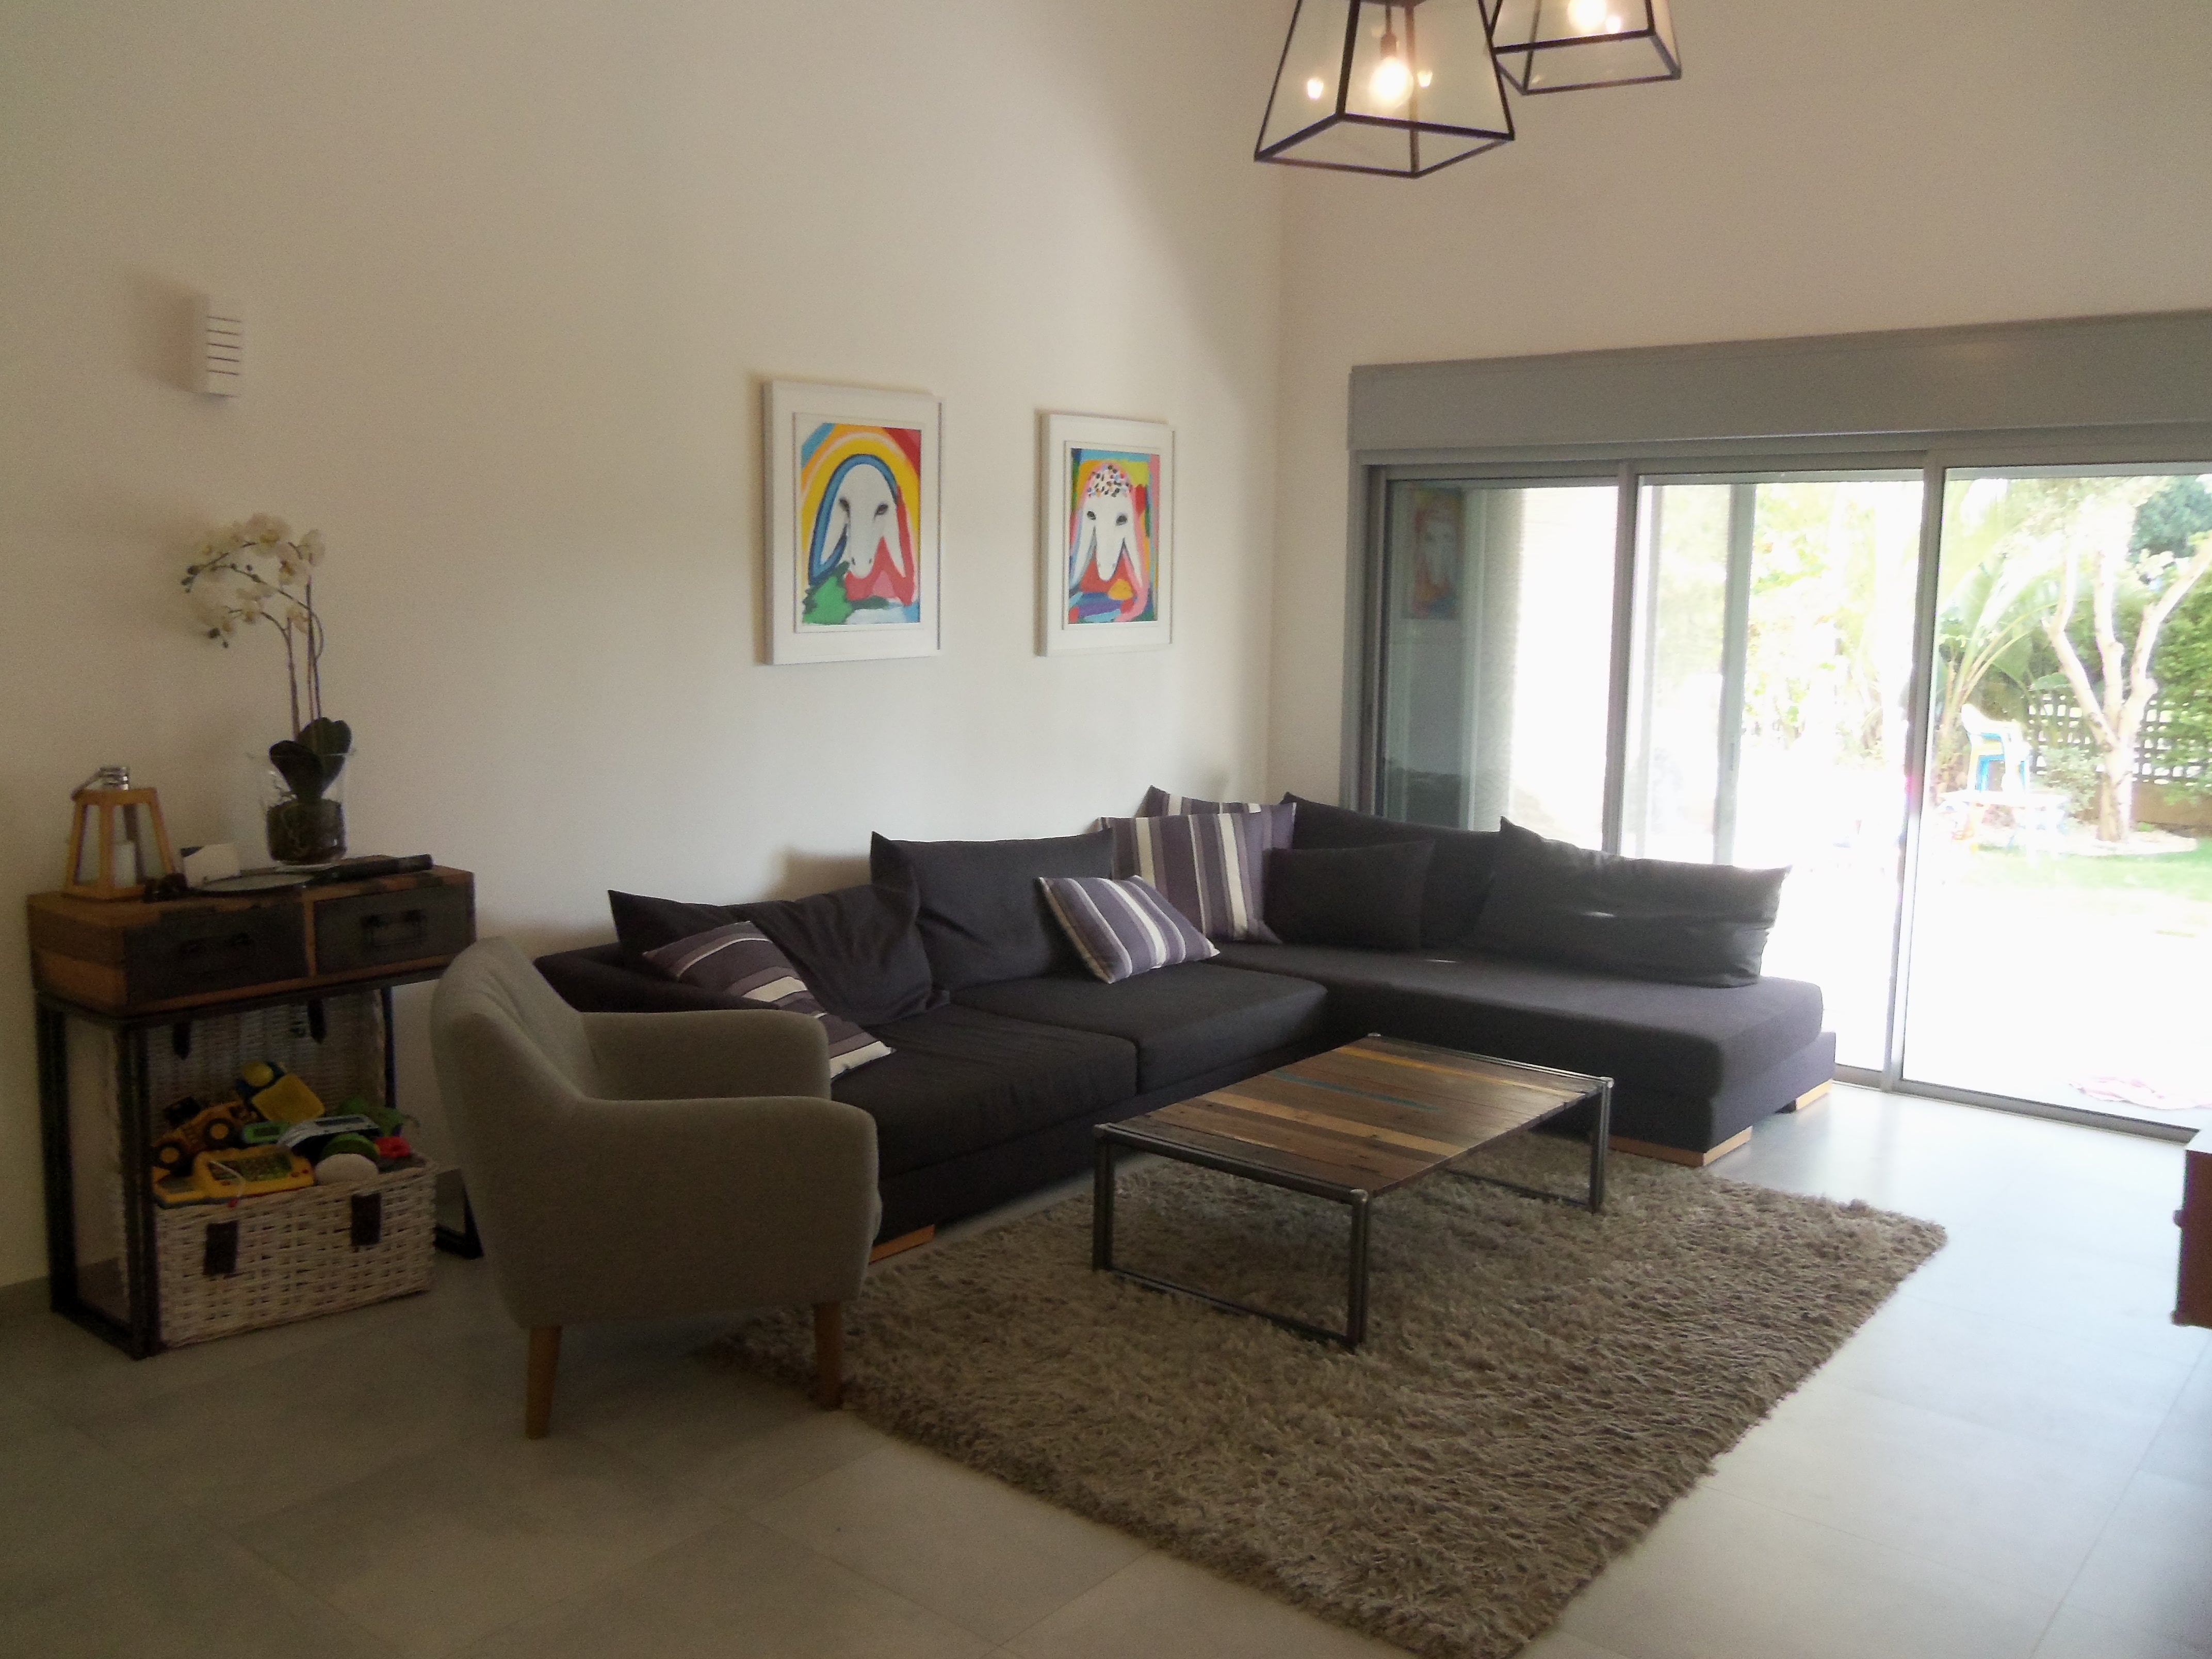 GardenApartment in Netanya on Shalom Aleichem street